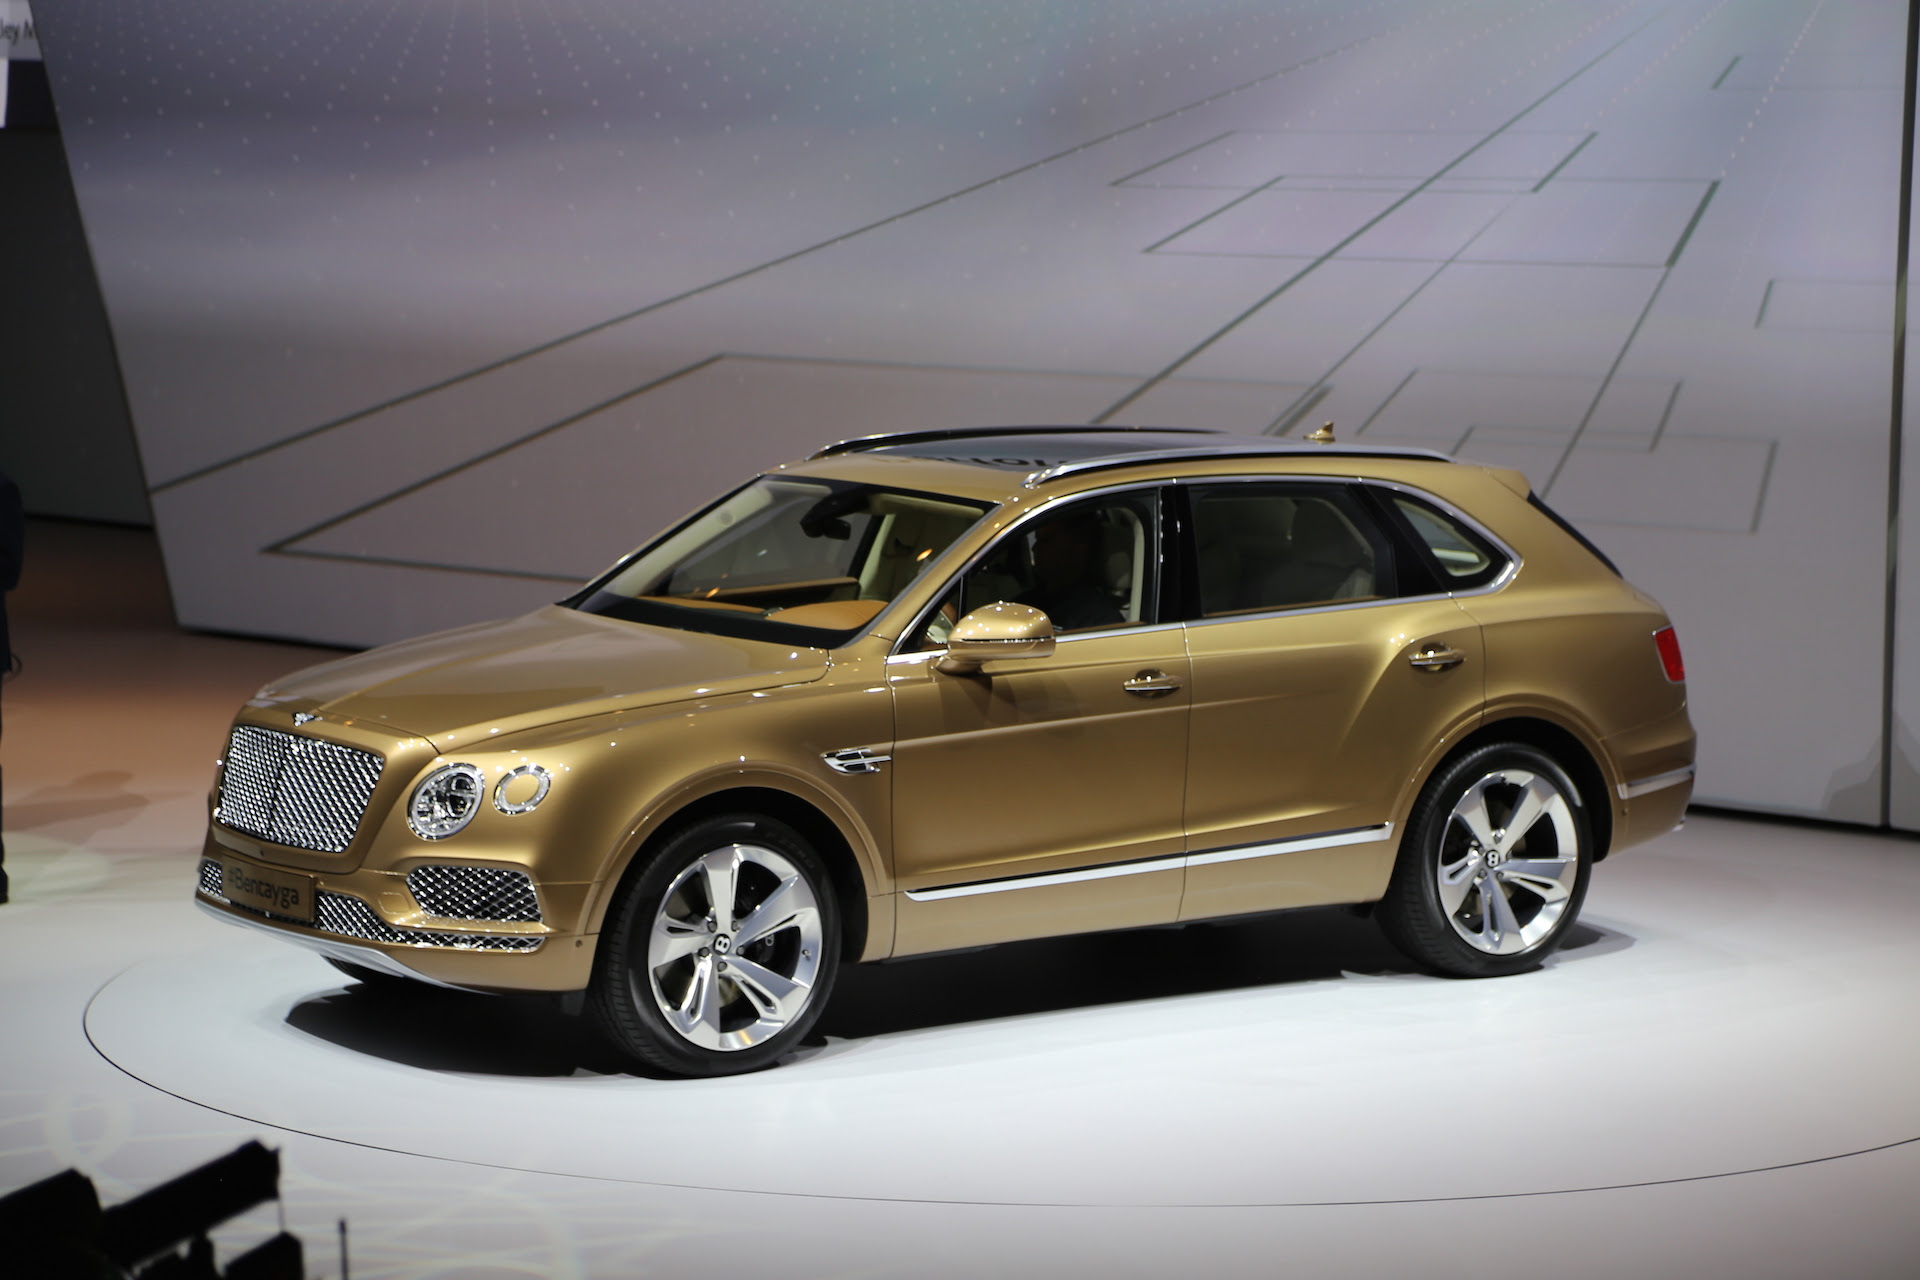 2017 Bentley Bentayga Priced From $229,100